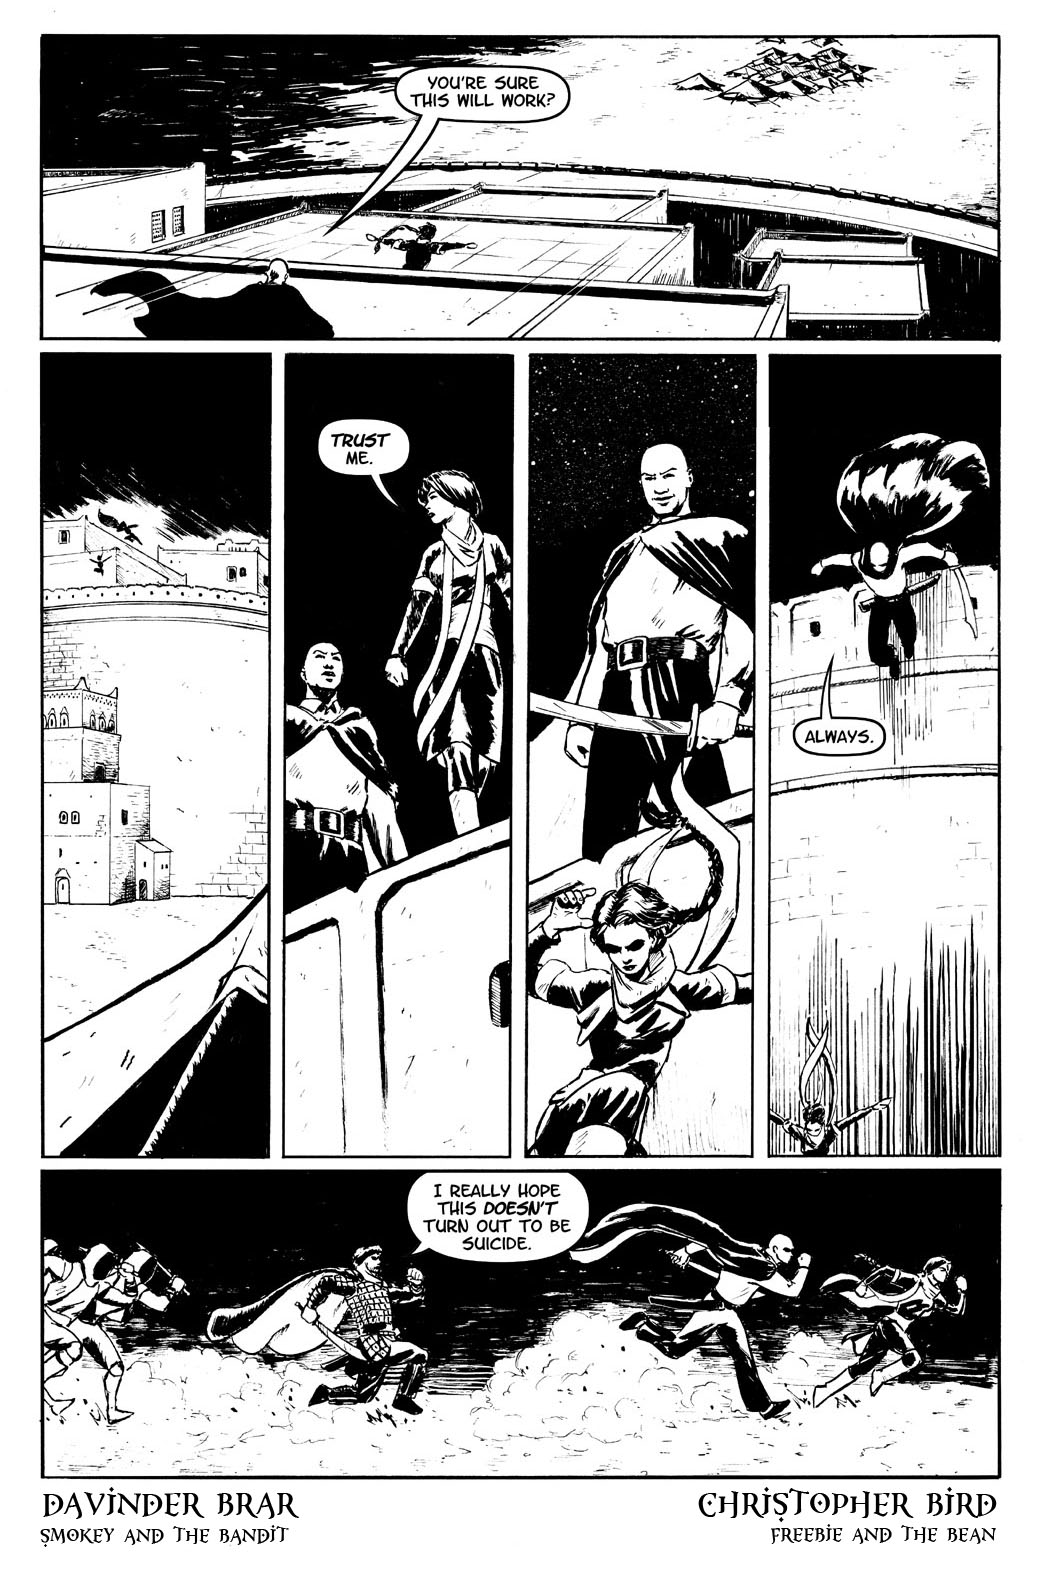 Book 4, page 20